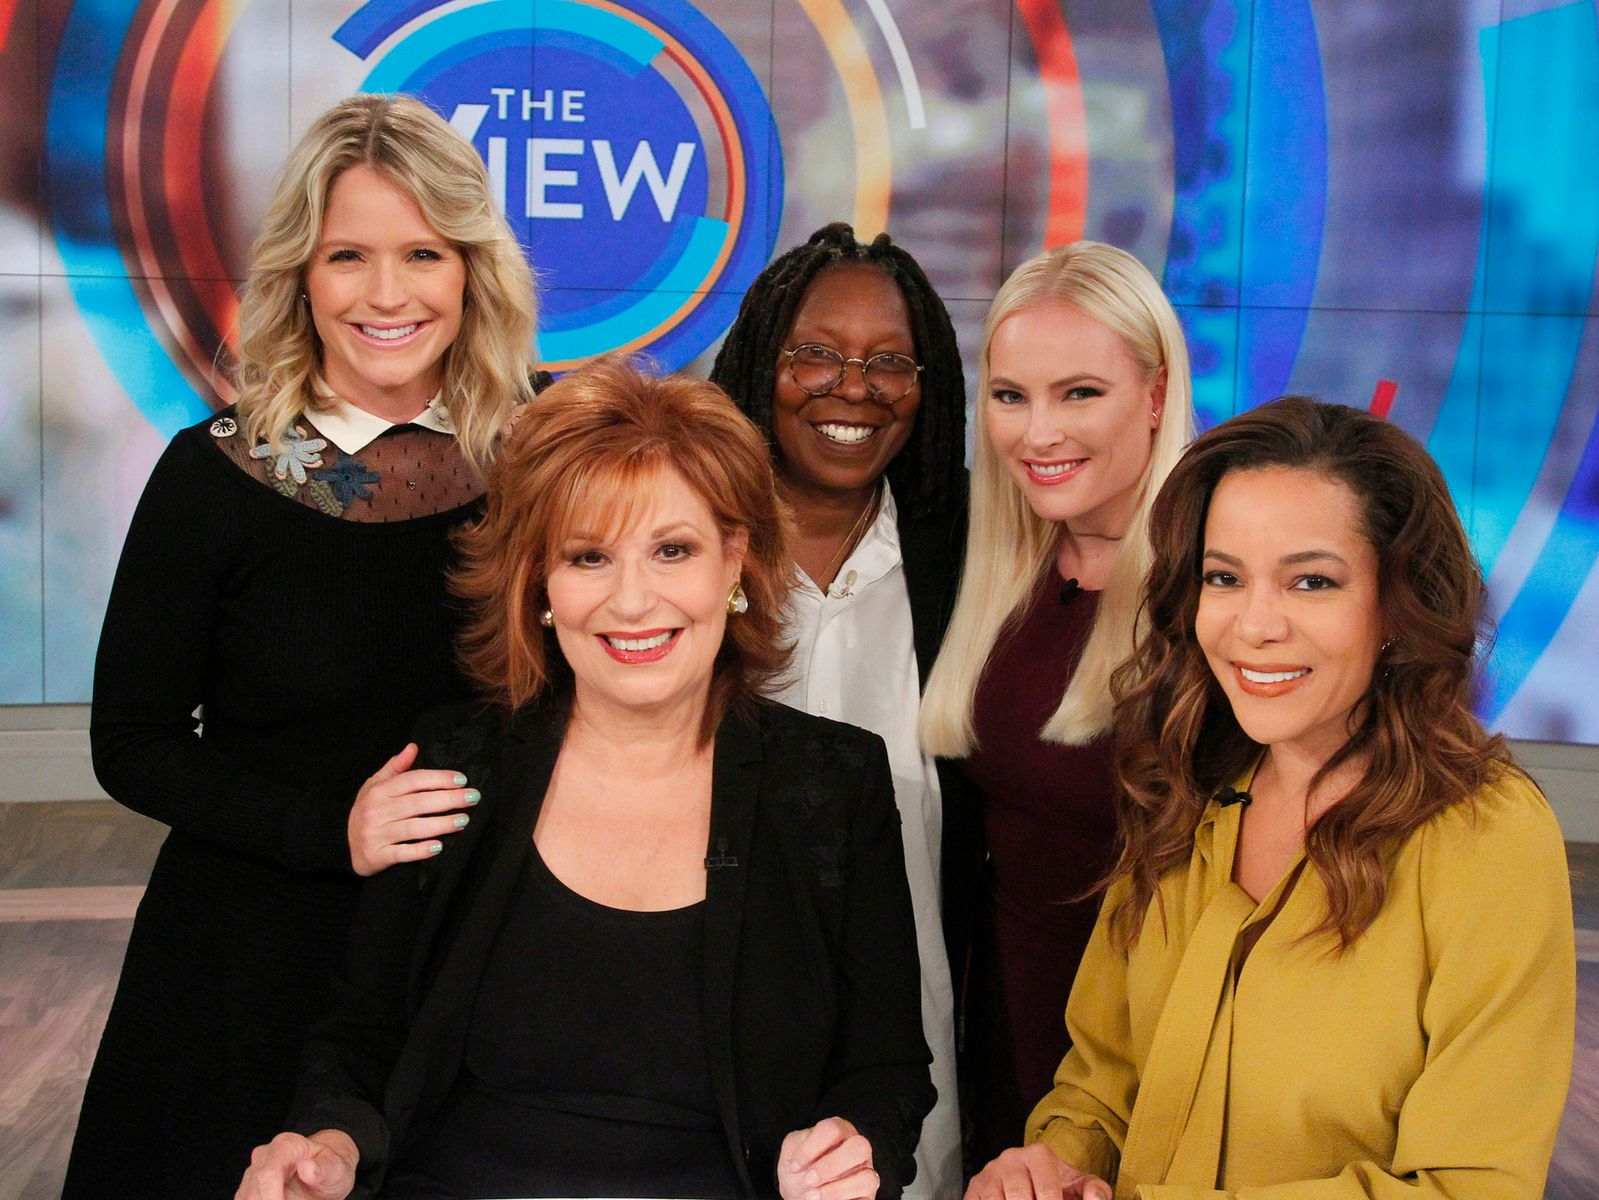 """""""The View"""" welcomes Meghan McCain as the newest co-host on October 09, 2017, alongside Sara Haines, Joy Behar, Whoopi Goldberg, and Sunny Hostin 